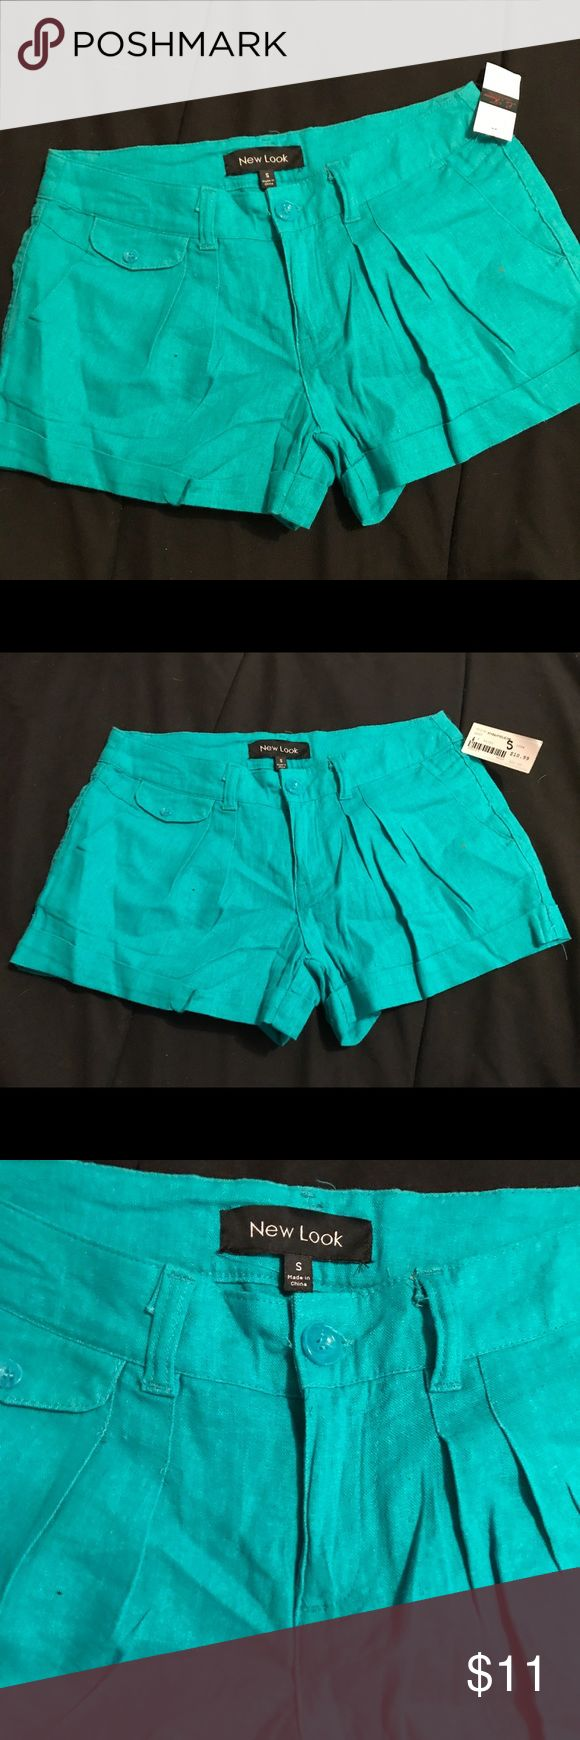 Turquoise shorts (new look) size small Perfect for this summer, brand new with original tags, fast shipping, ask any questions new look Shorts Bermudas